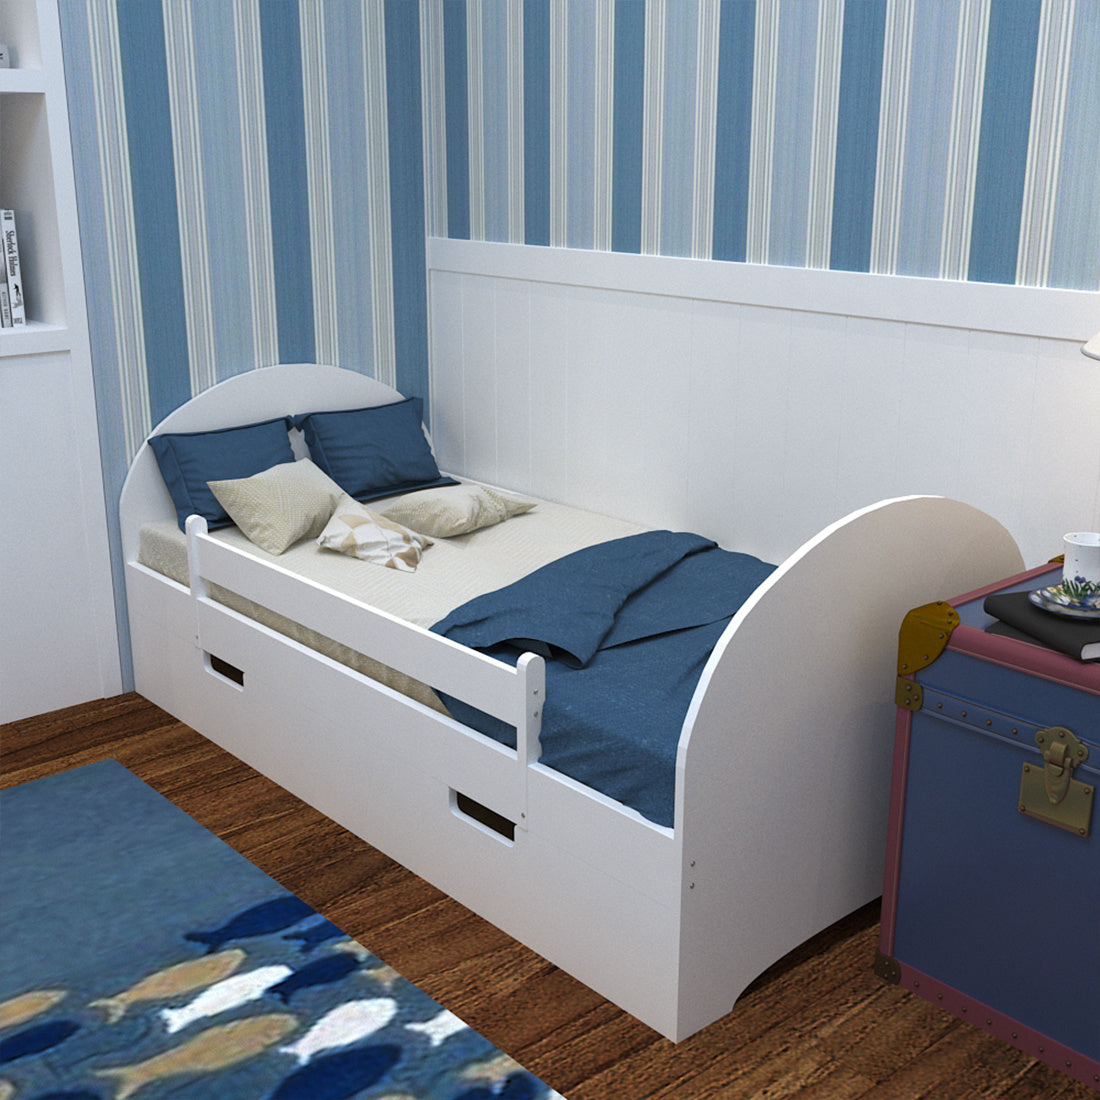 Solid Pine Wood Kids Children Bed Frame Drawers & Safety Rails